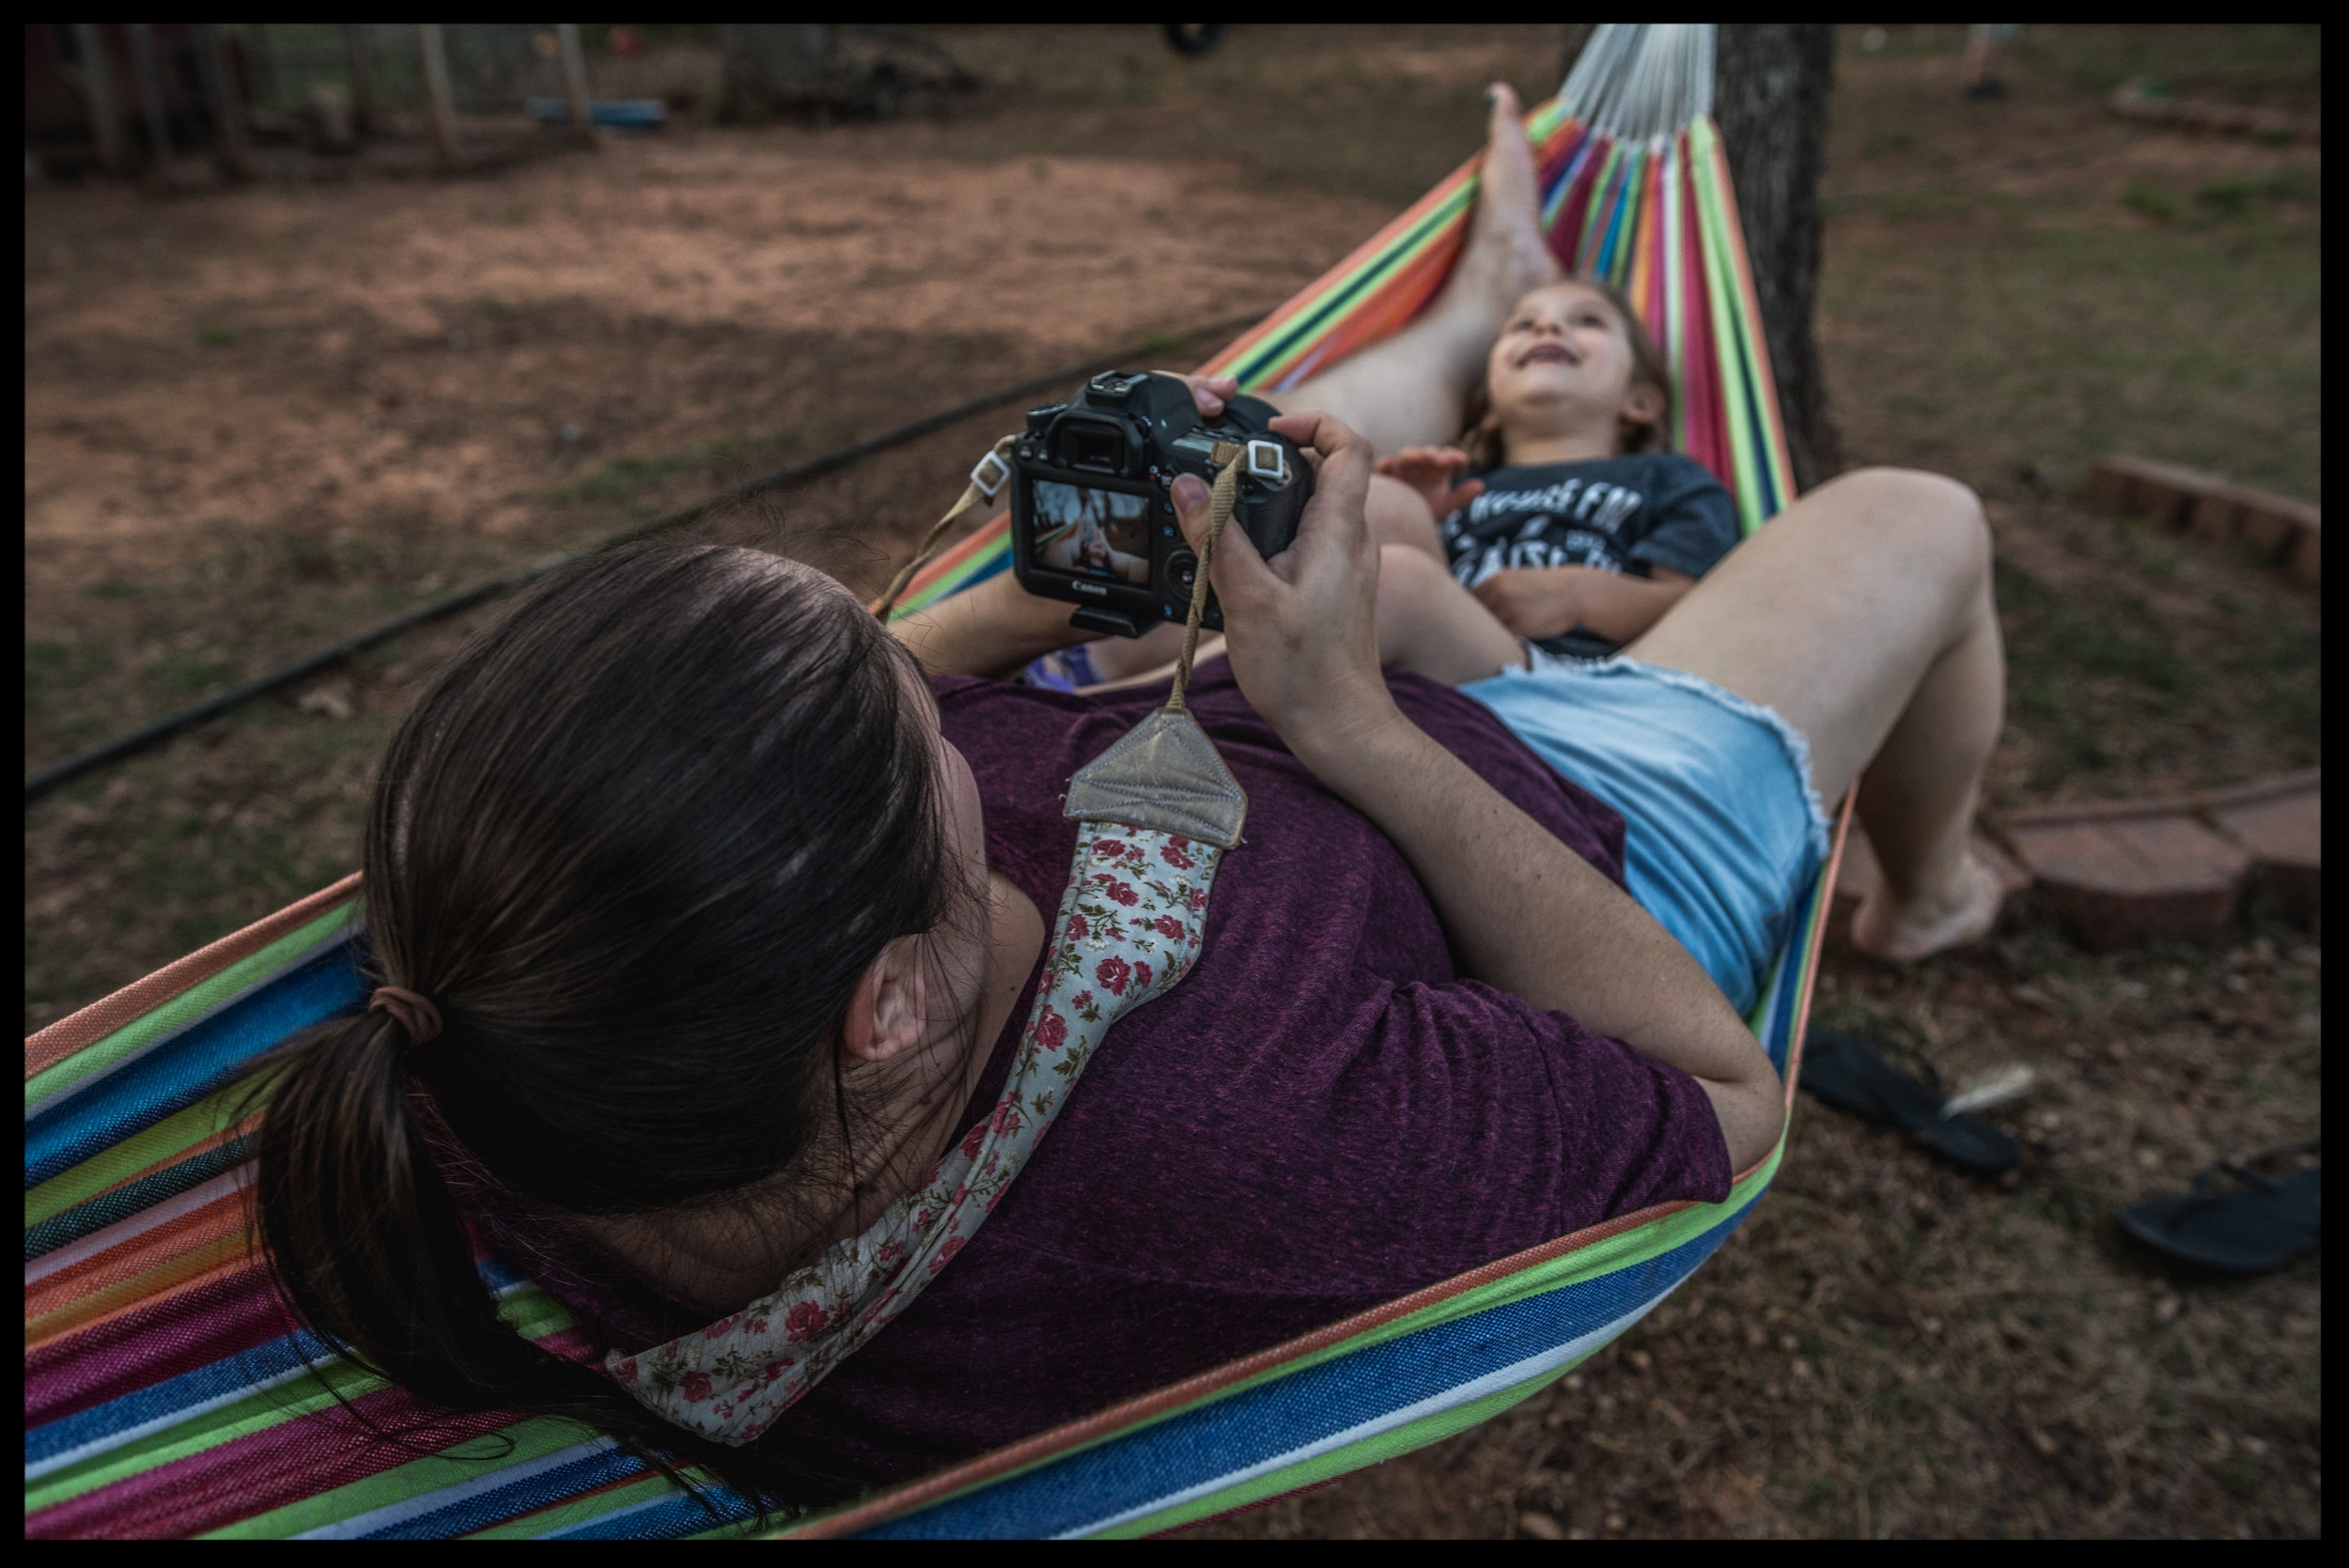 Mother taking a photo of her daughter in a hammock, color